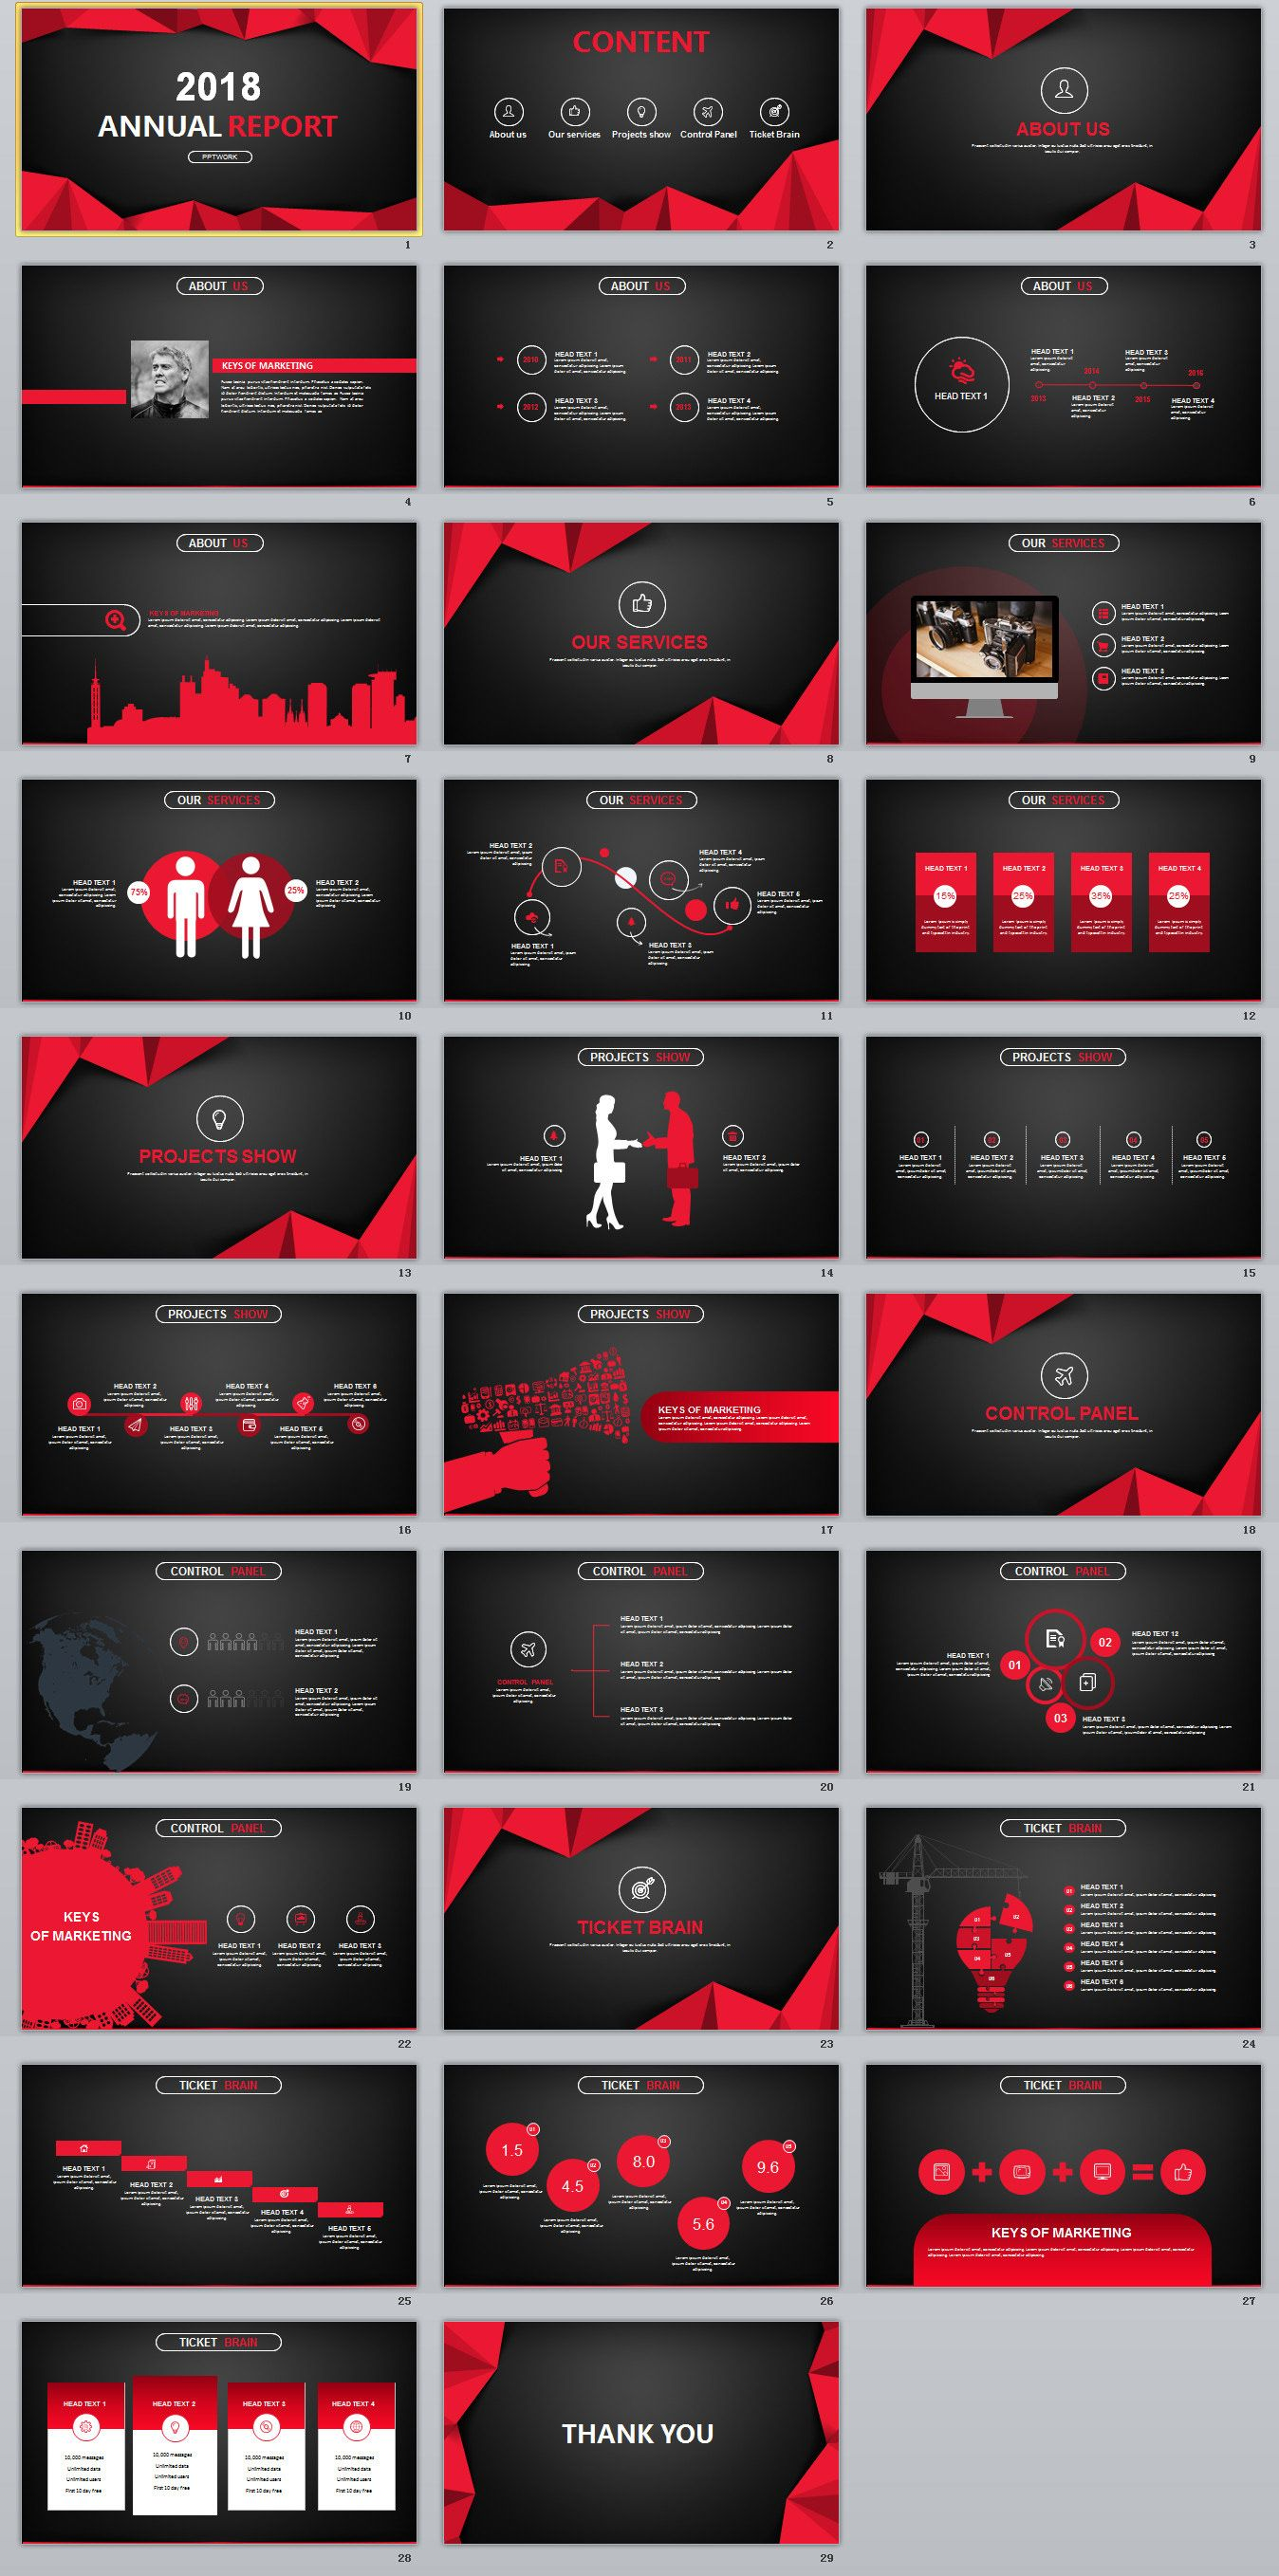 29 Red Black Annual Report Powerpoint Templates On Behance